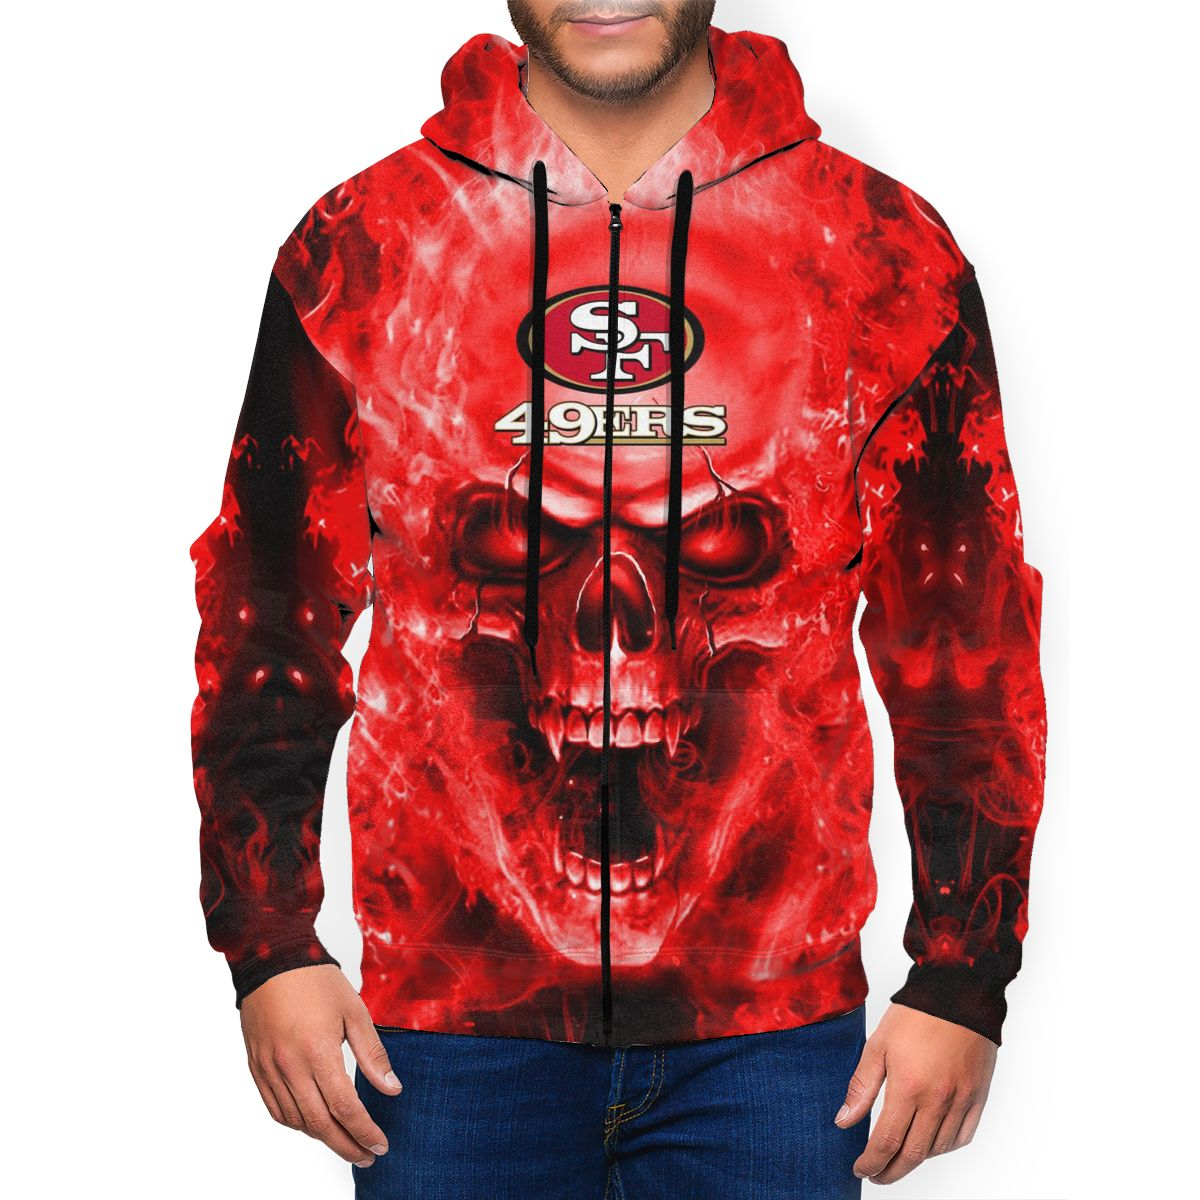 3D Skull 49ers Men's Zip Hooded Sweatshirt